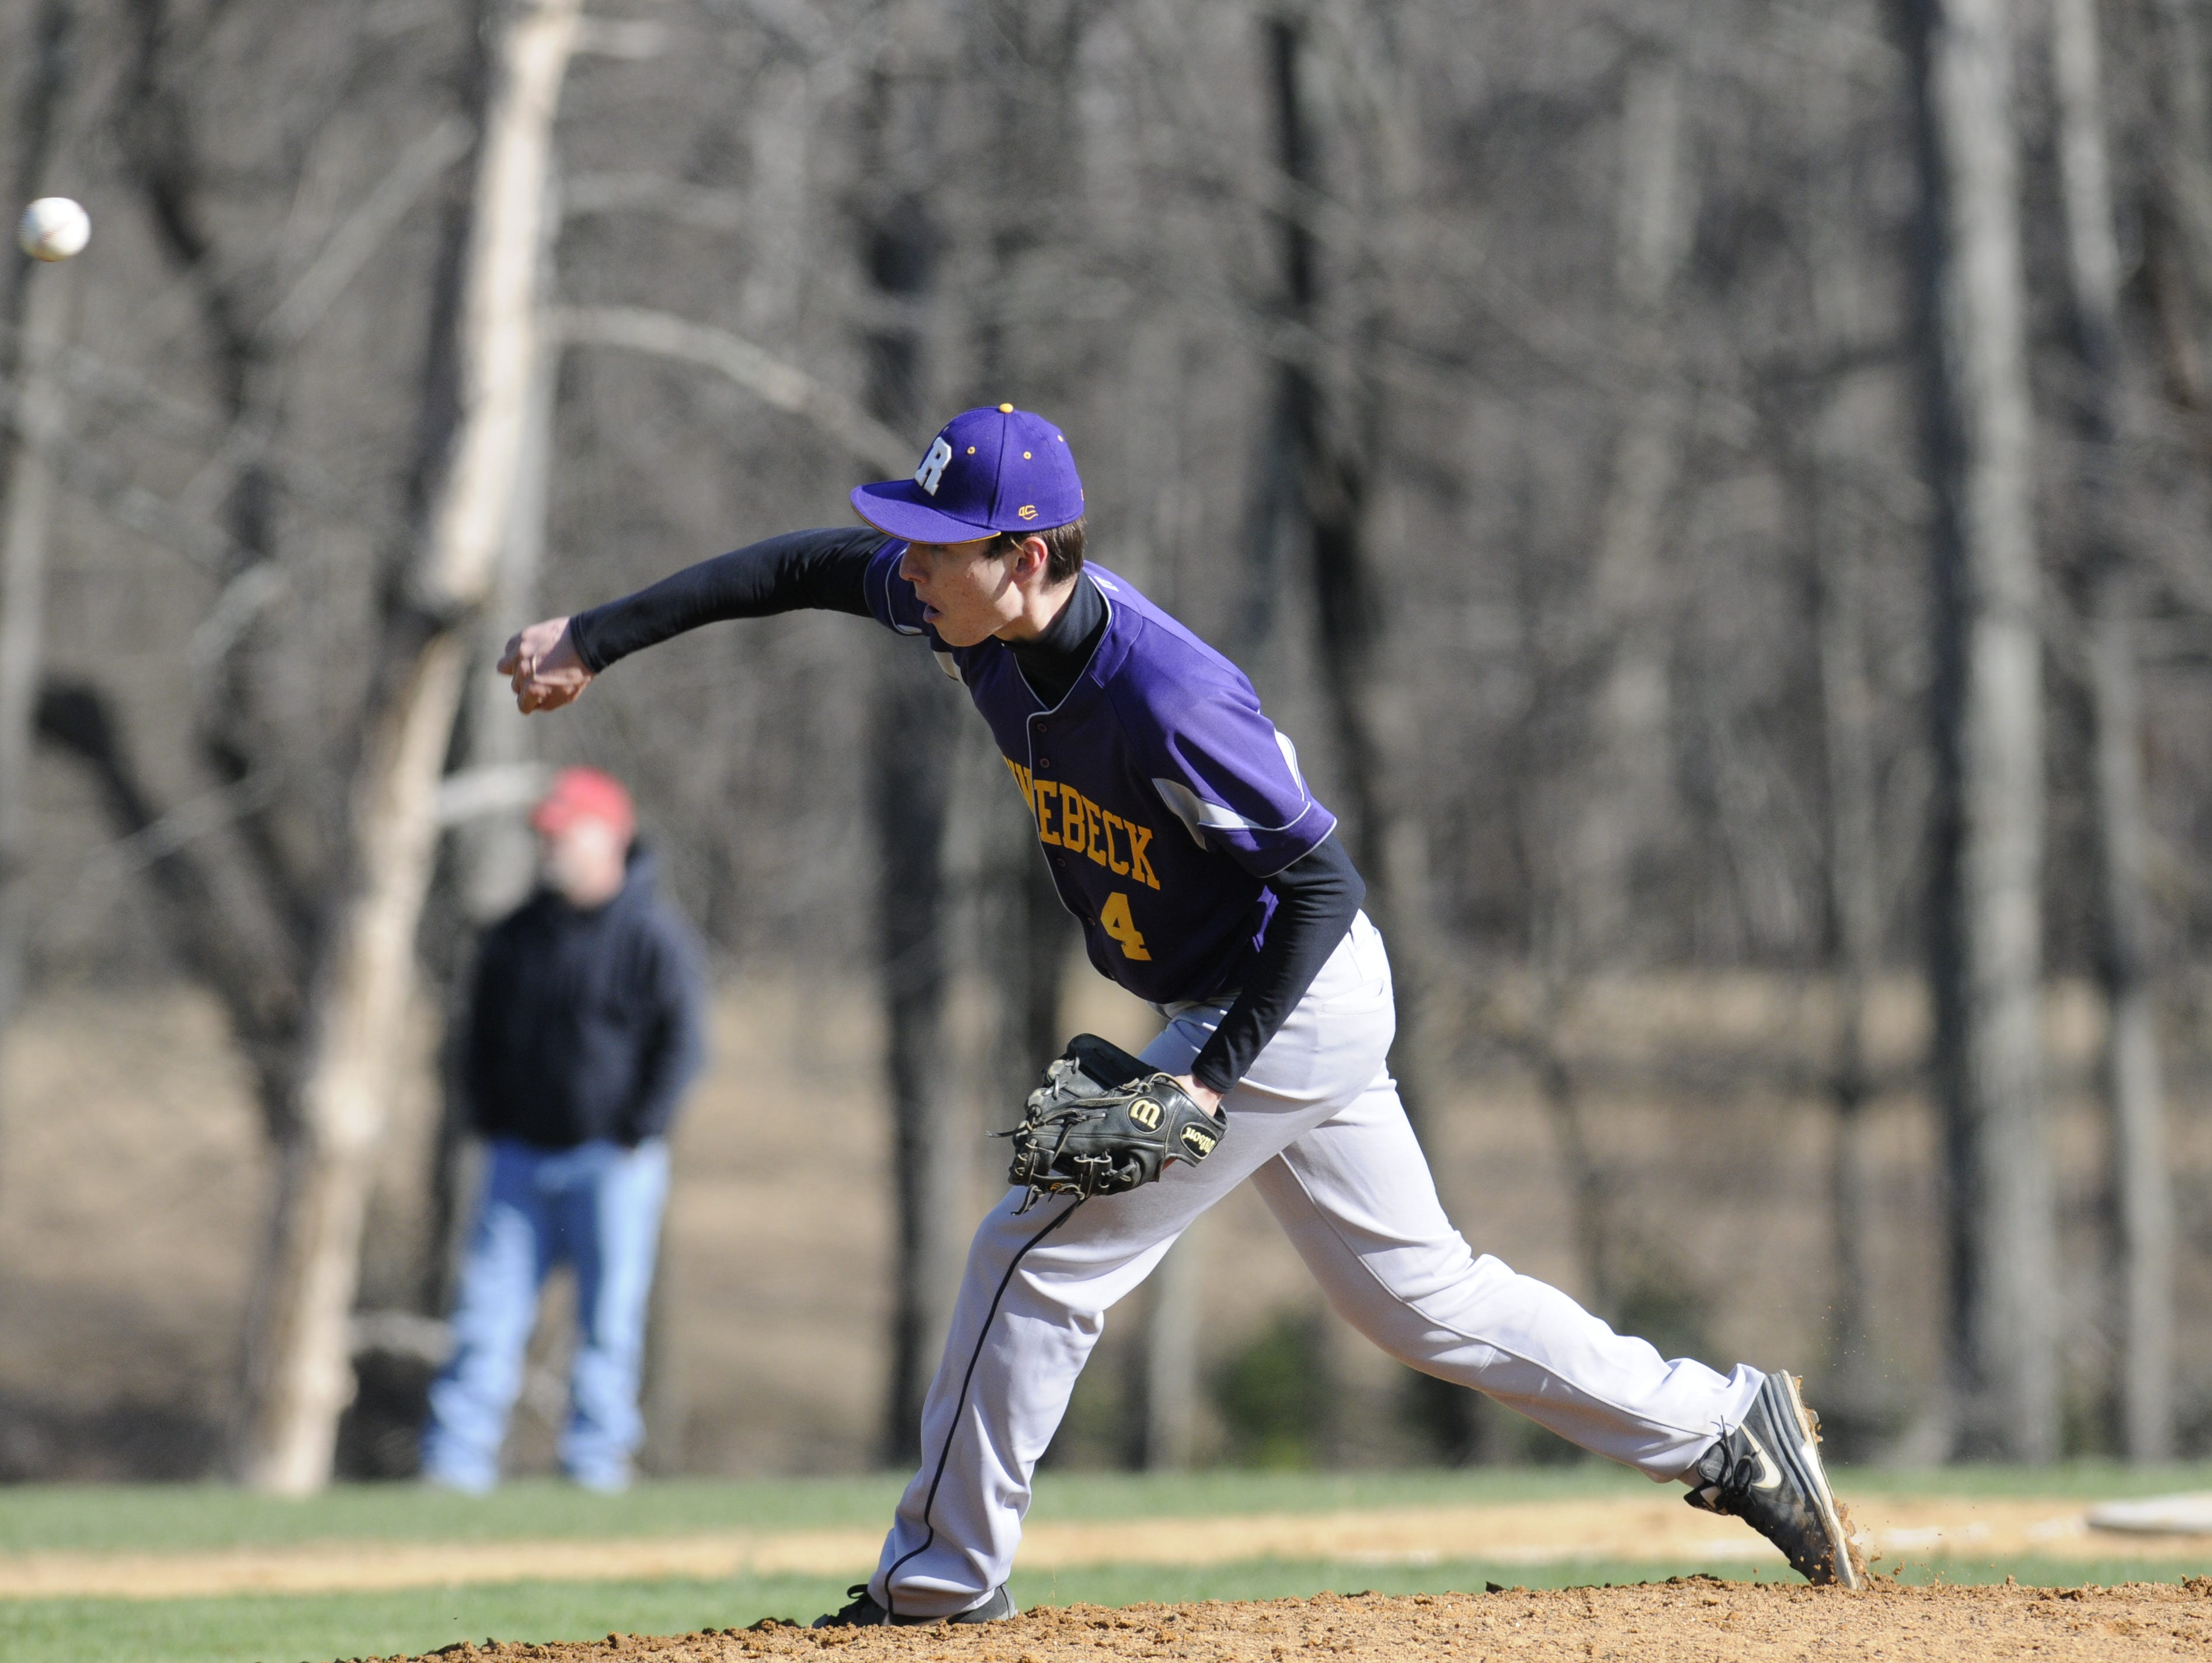 Rhine beck's Chris Cassens pitches during Wednesday's home game versus Webutuck.